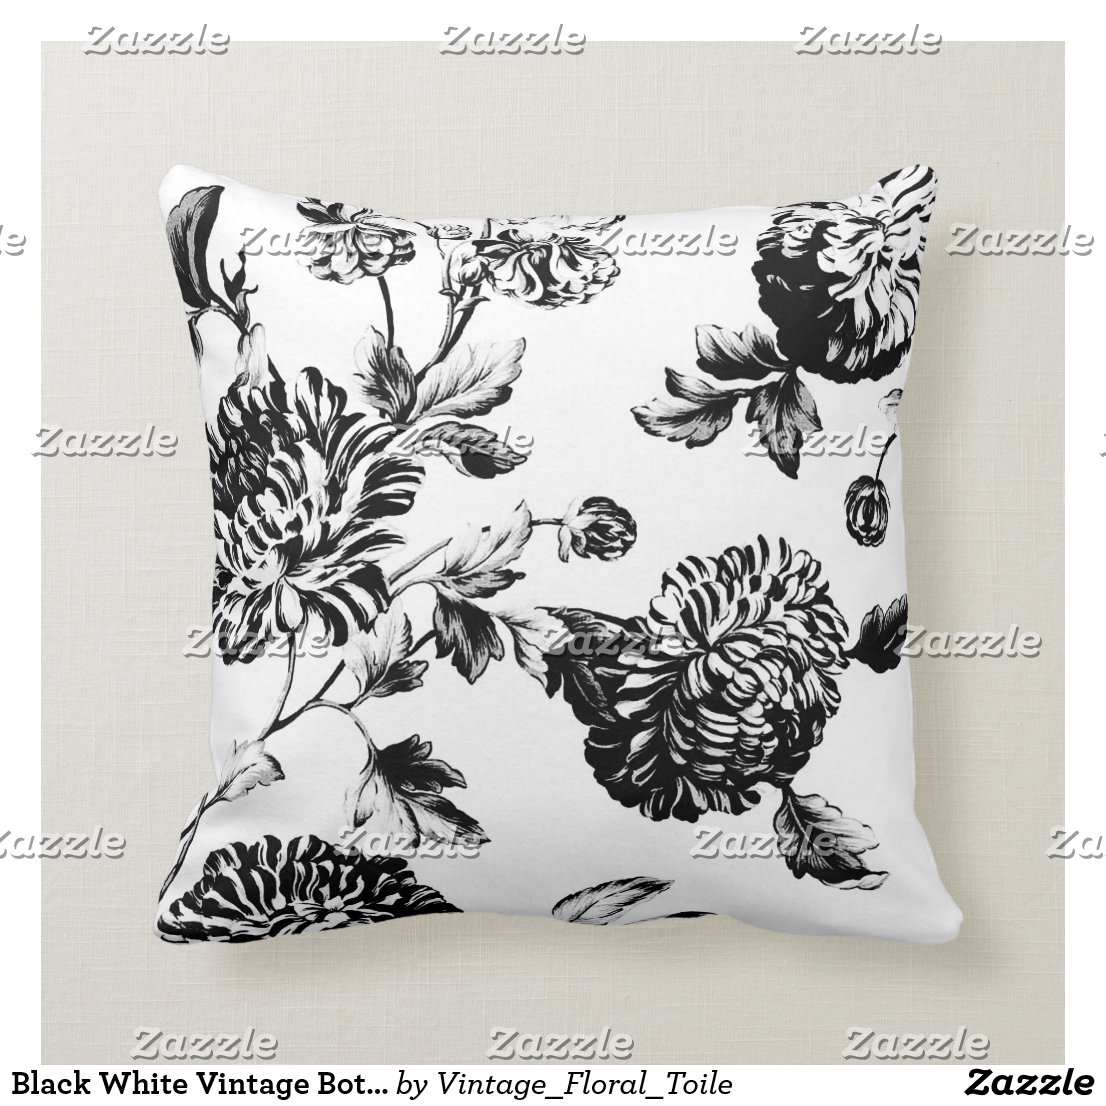 Black White Vintage Botanical Floral Pillow